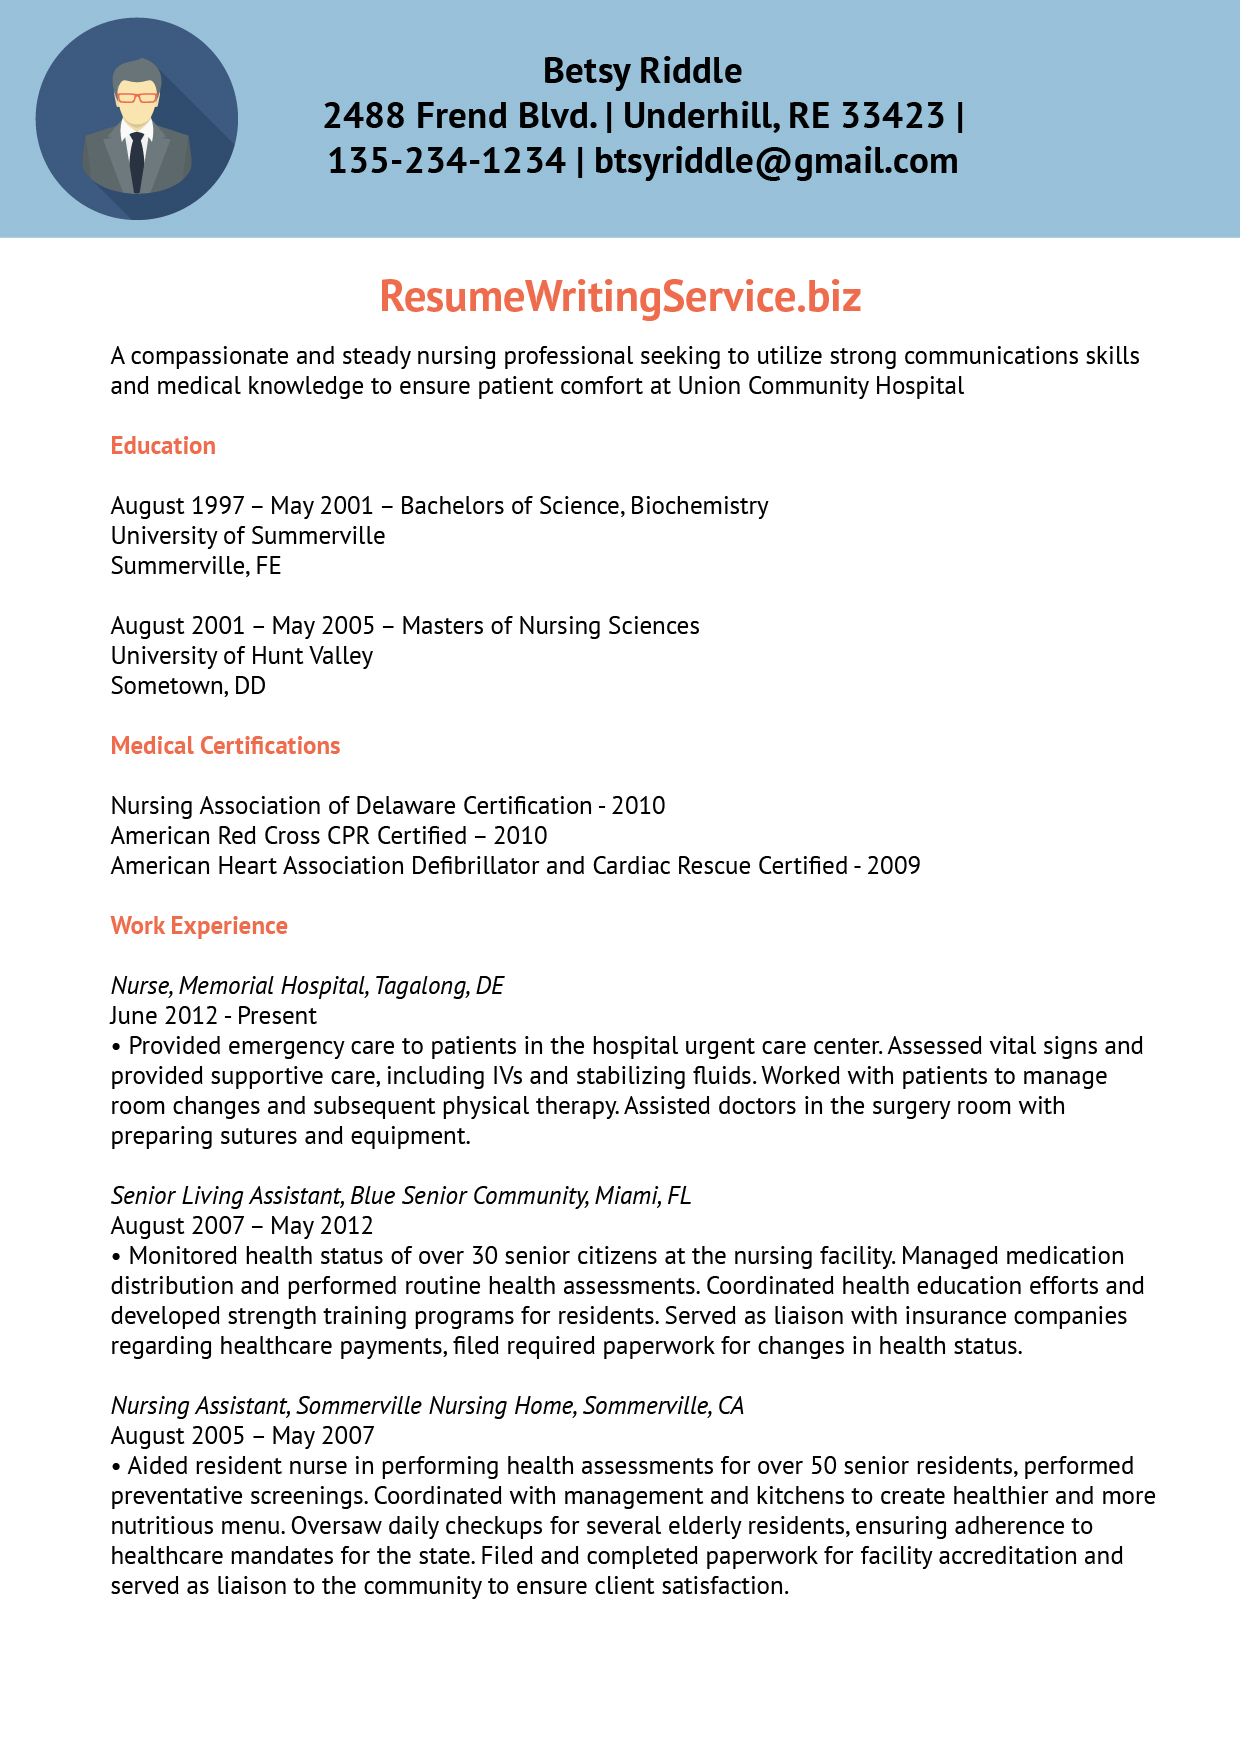 Nurse Resume Sample Resume Writing Service